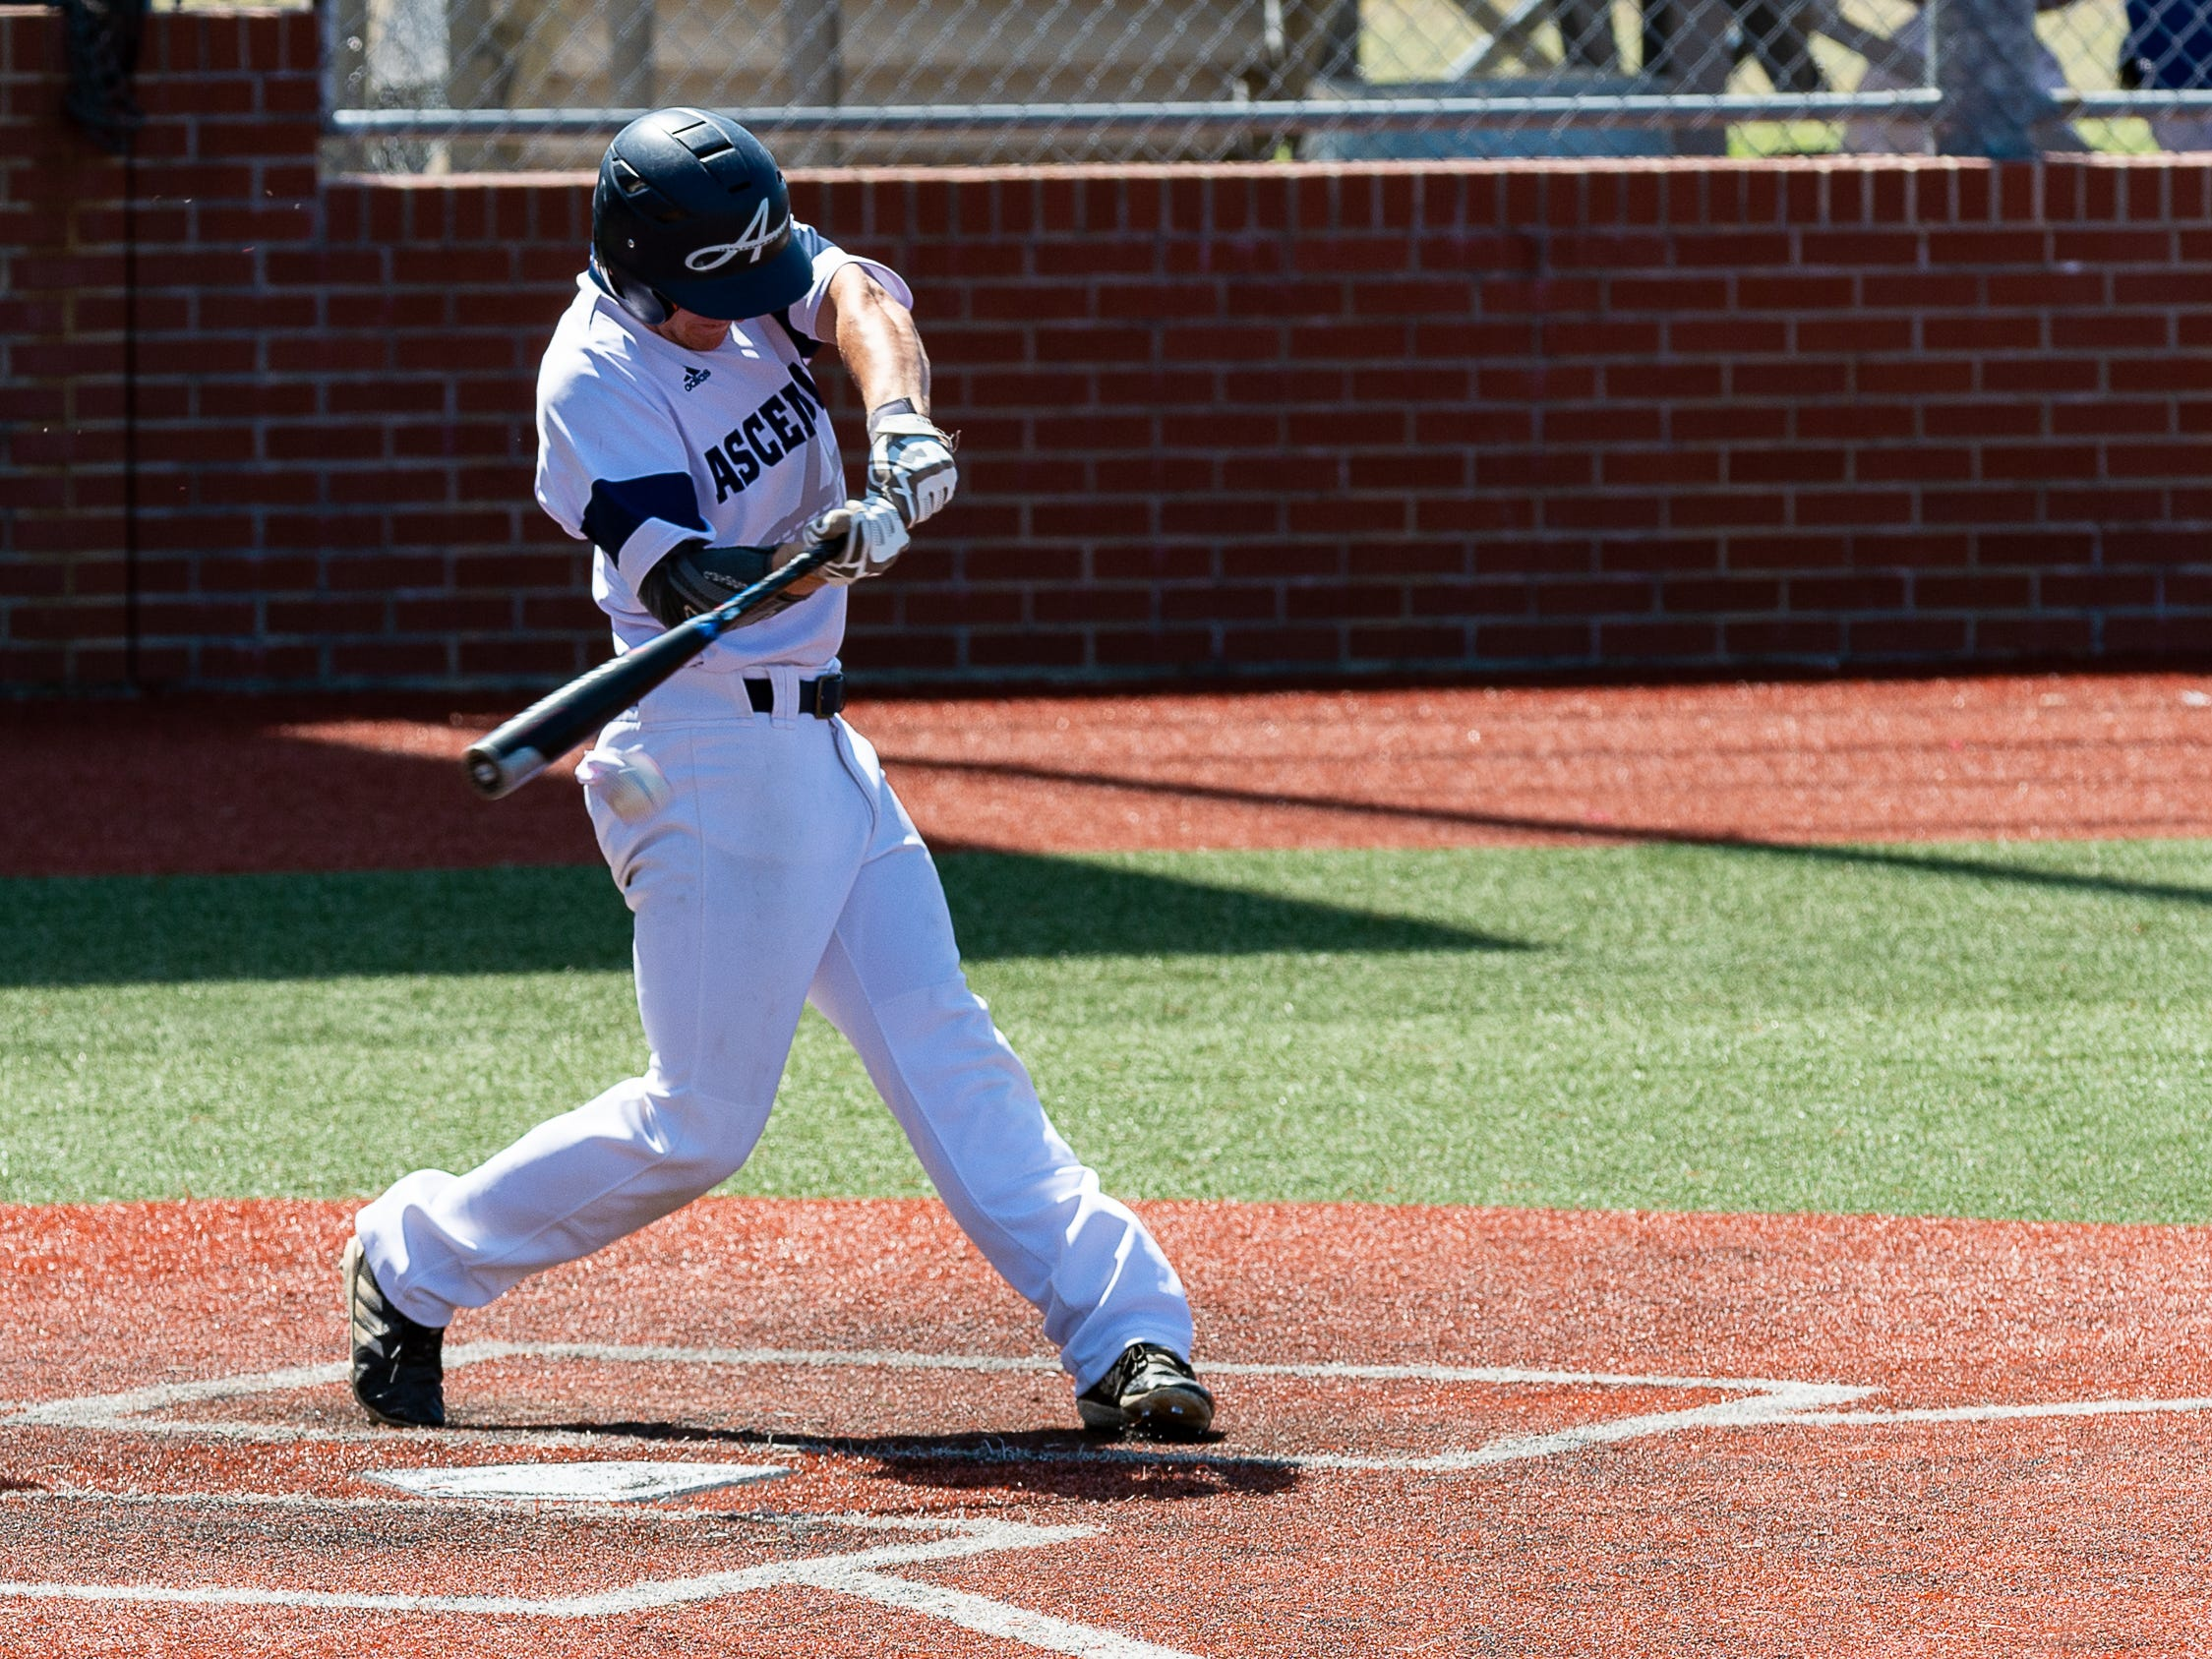 Blaine Blanchard at the plate as Ascension Episcopal falls to Calvary Baptist Championship round at the LHSAA State Tournament. Monday, May 13, 2019.